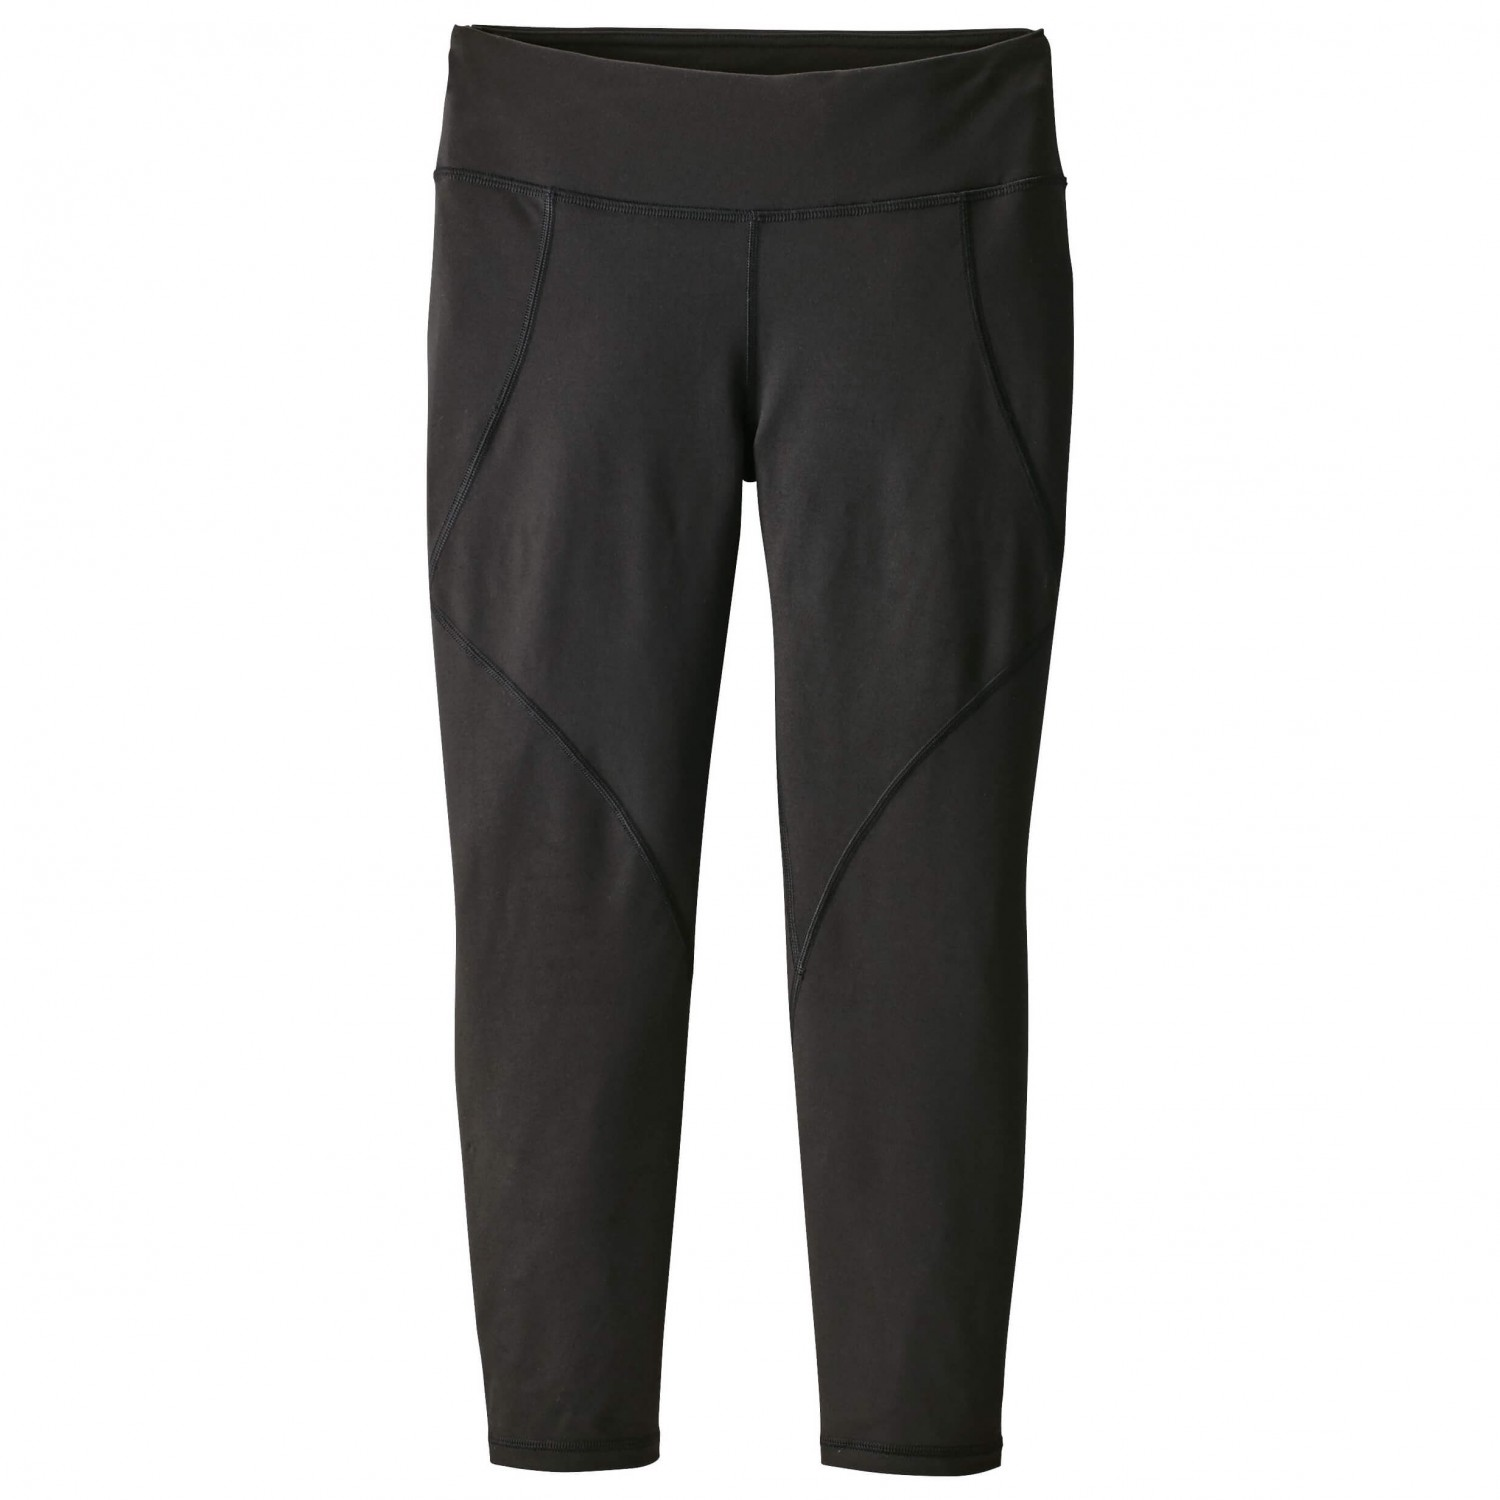 ee1f875fadd7 Patagonia - Women s Centered Crops - Yoga trousers